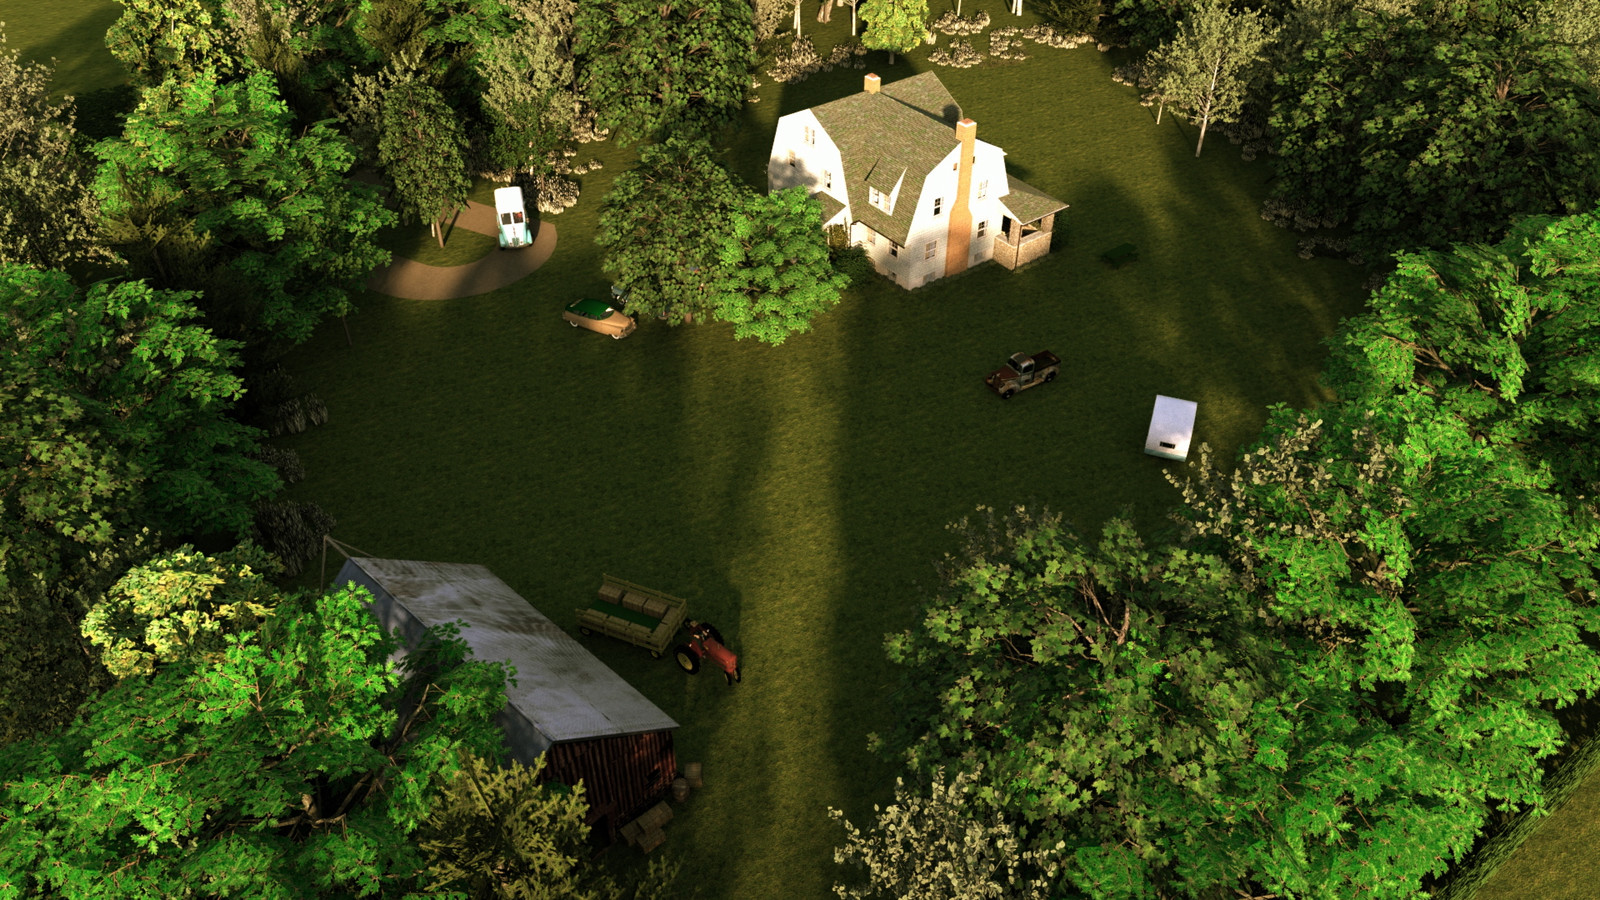 """""""Mason Farm - Morning Has Broken"""" Summer Sun Collection   04 Masonfarm HD1080 21 - iP Kodac   """"SketchUp to LayOut"""" The Mason Farm Renders for the launching of the new book """"SketchUp to LayOut"""" http://bit.ly/2j0d0Wh by MasterSketchup."""